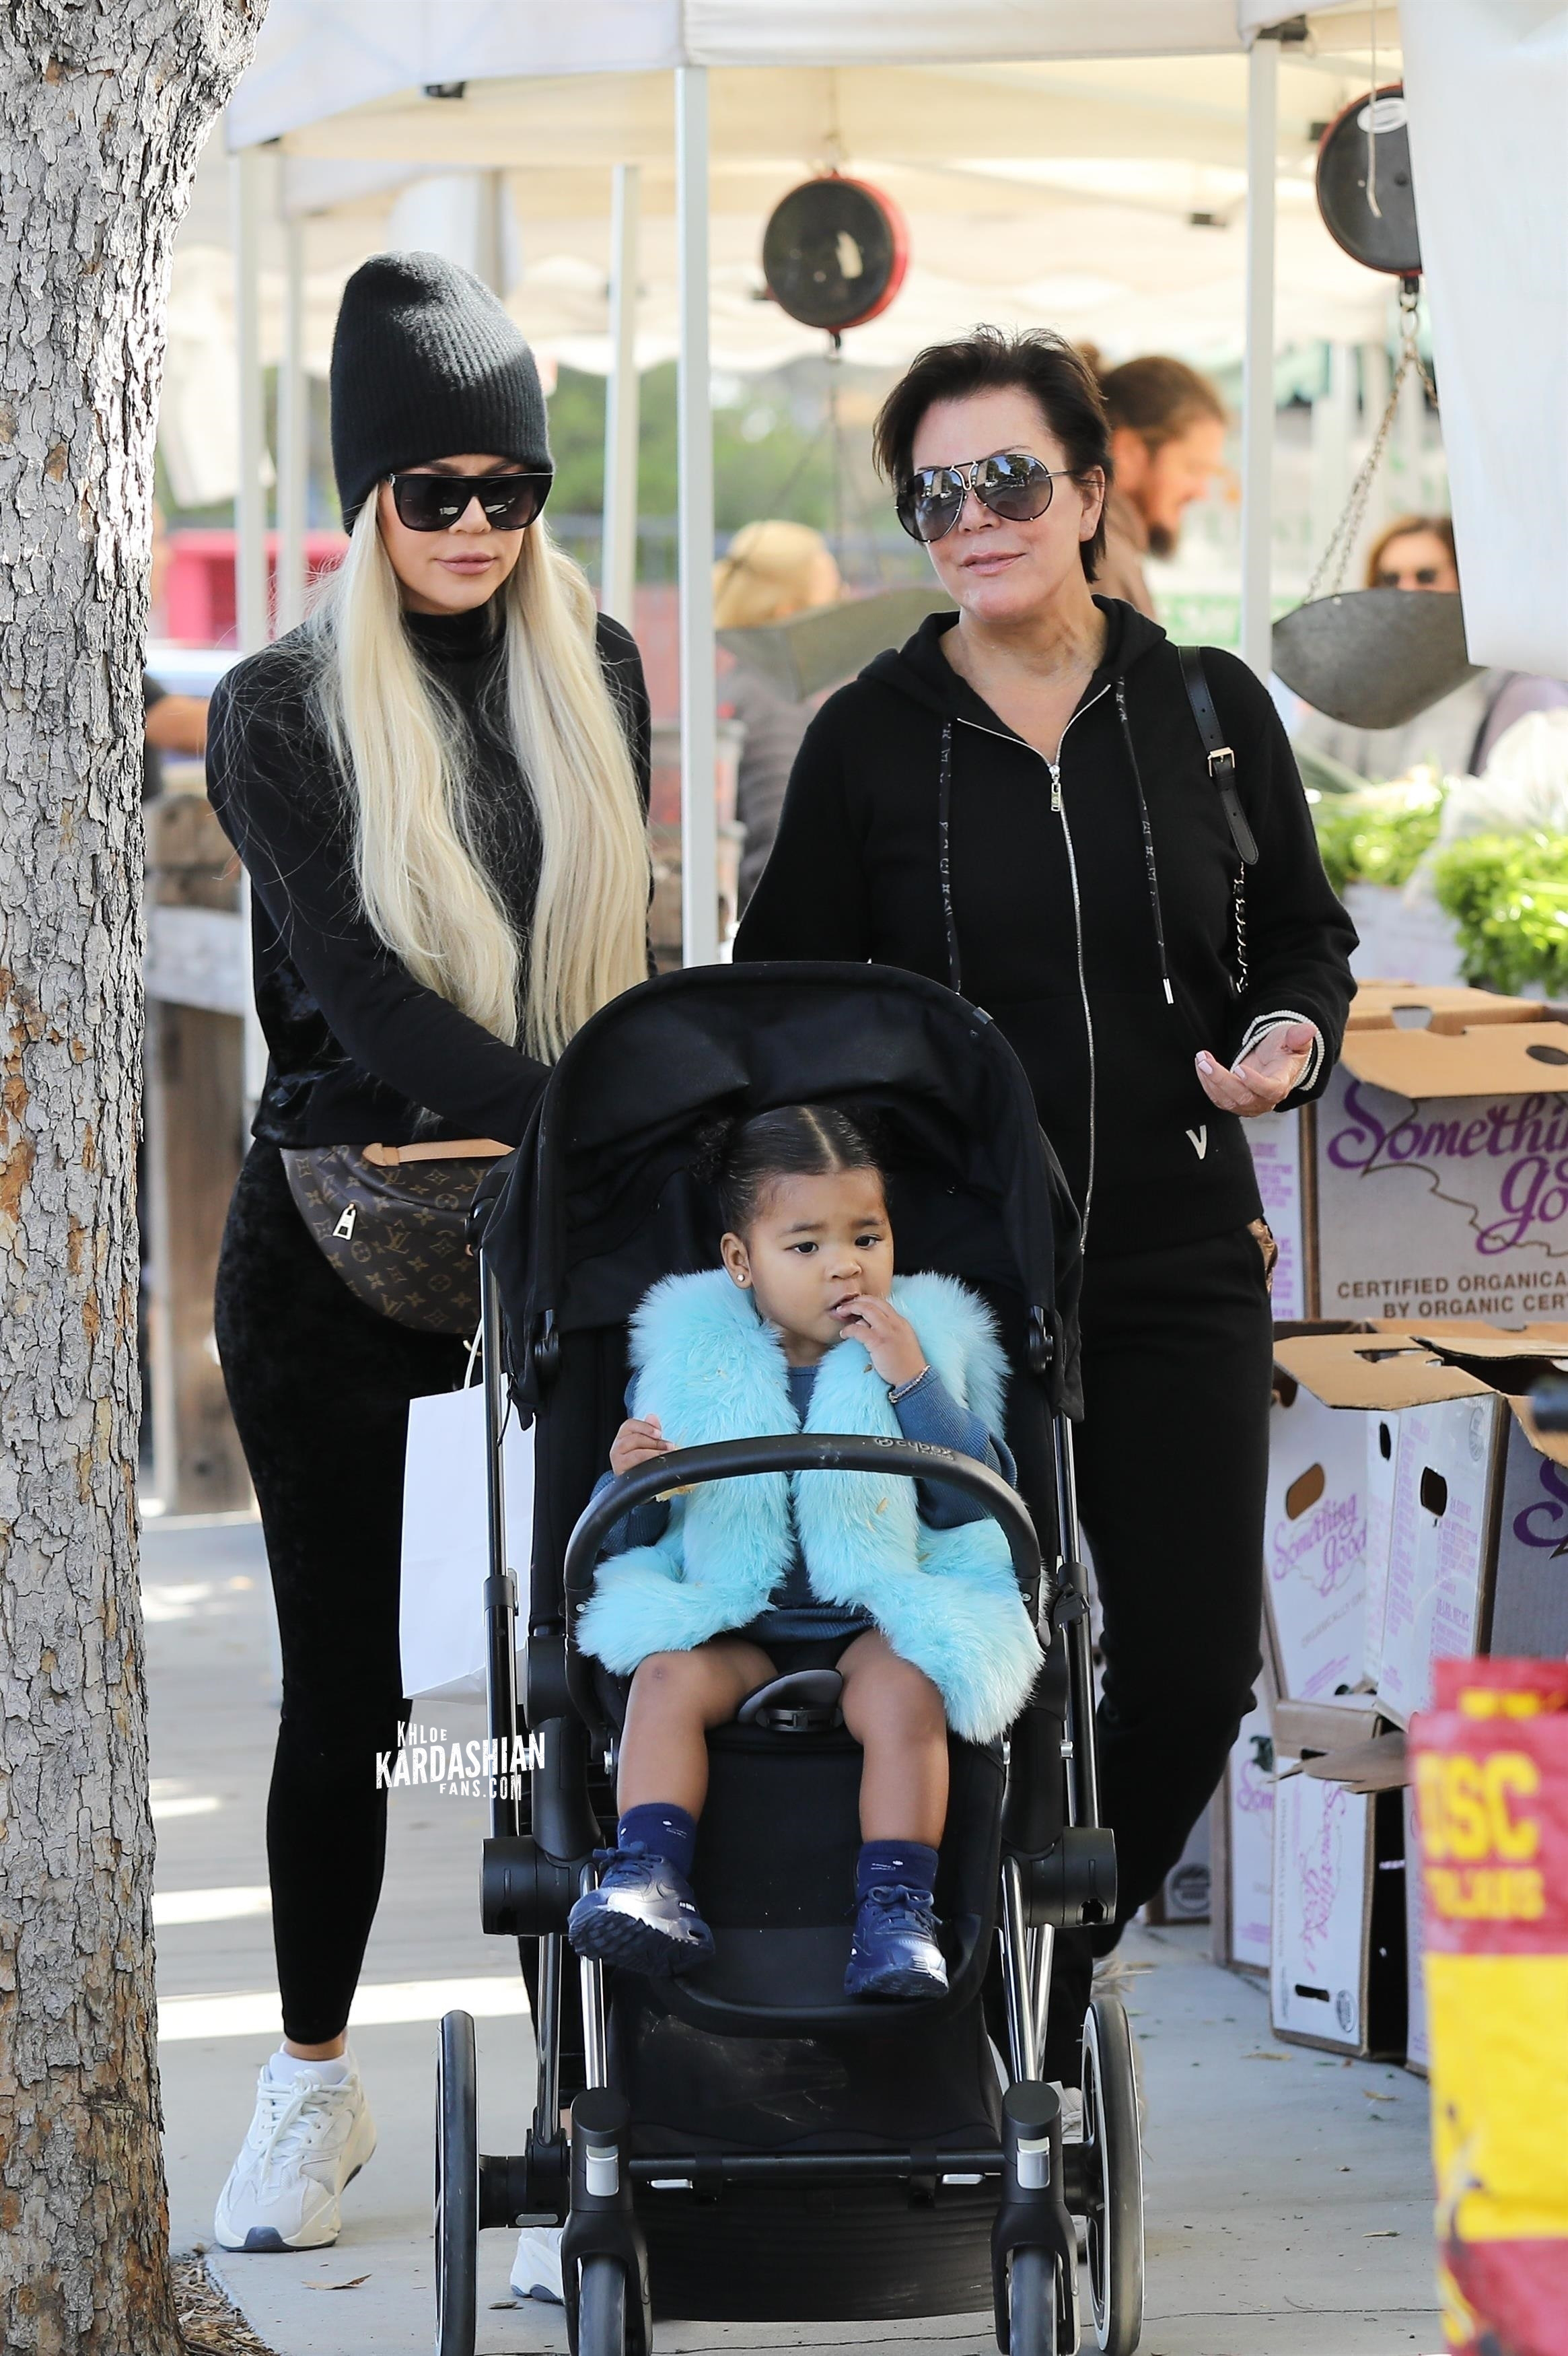 Nov 2: Khloe Kardashian at the farmer's  market in Calabasas